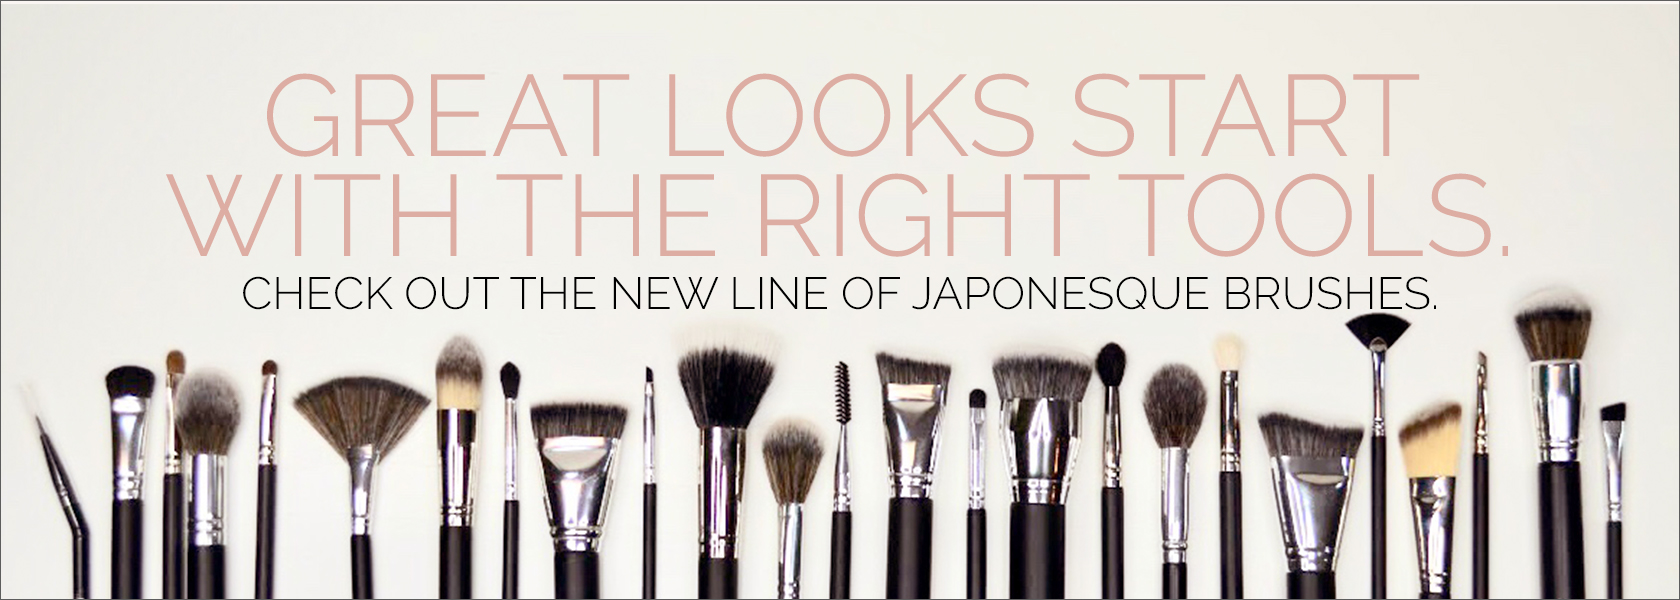 Shop JAPONESQUE Brushes at MCC